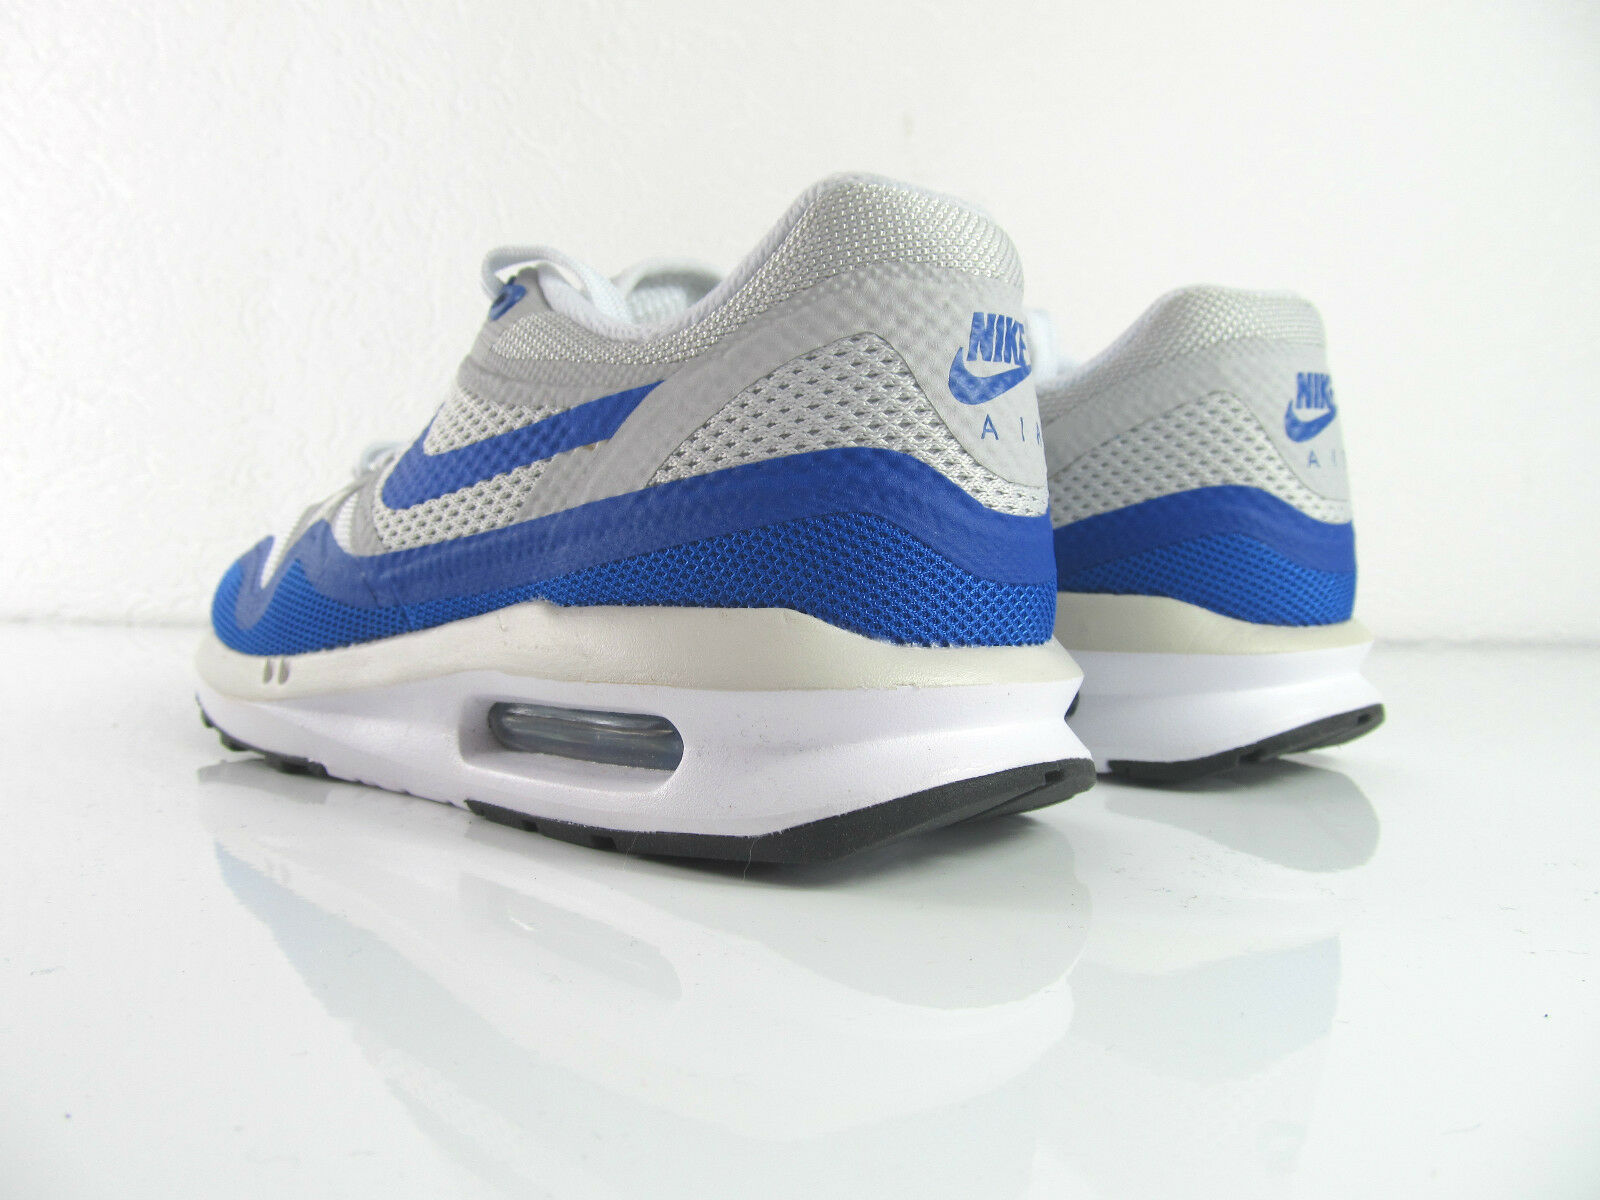 Nike Air MAx 1 Lunar1 Essential Weiß Royal 90 OG Eur_36.5 Retro Running  US_6 Eur_36.5 OG 506a12